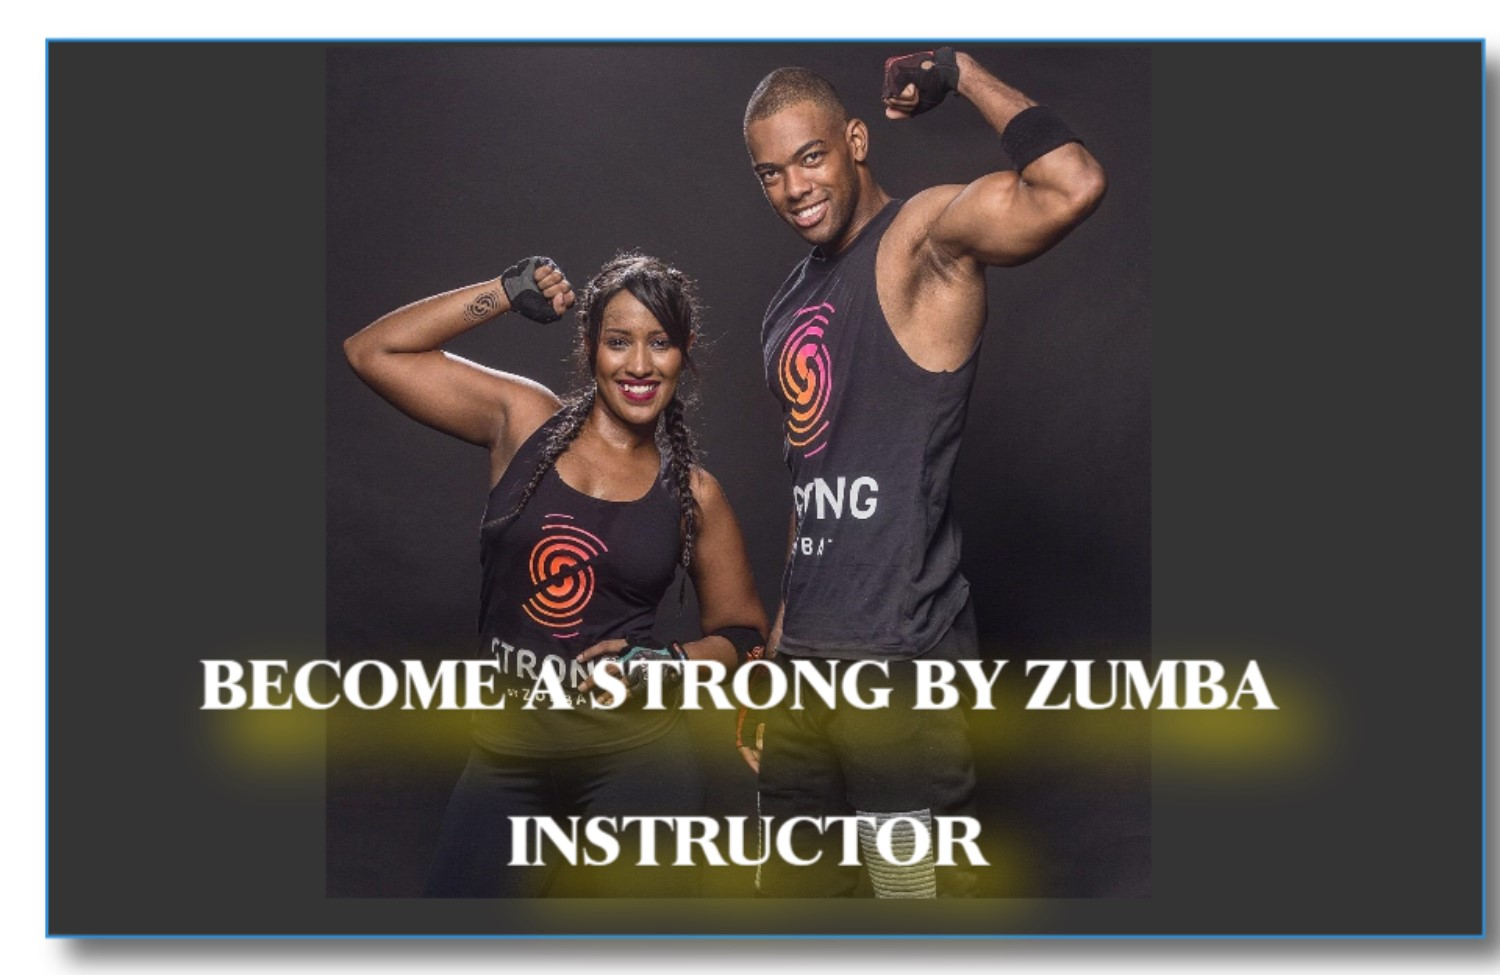 Pre-Register for Strong by Zumba Instructor training